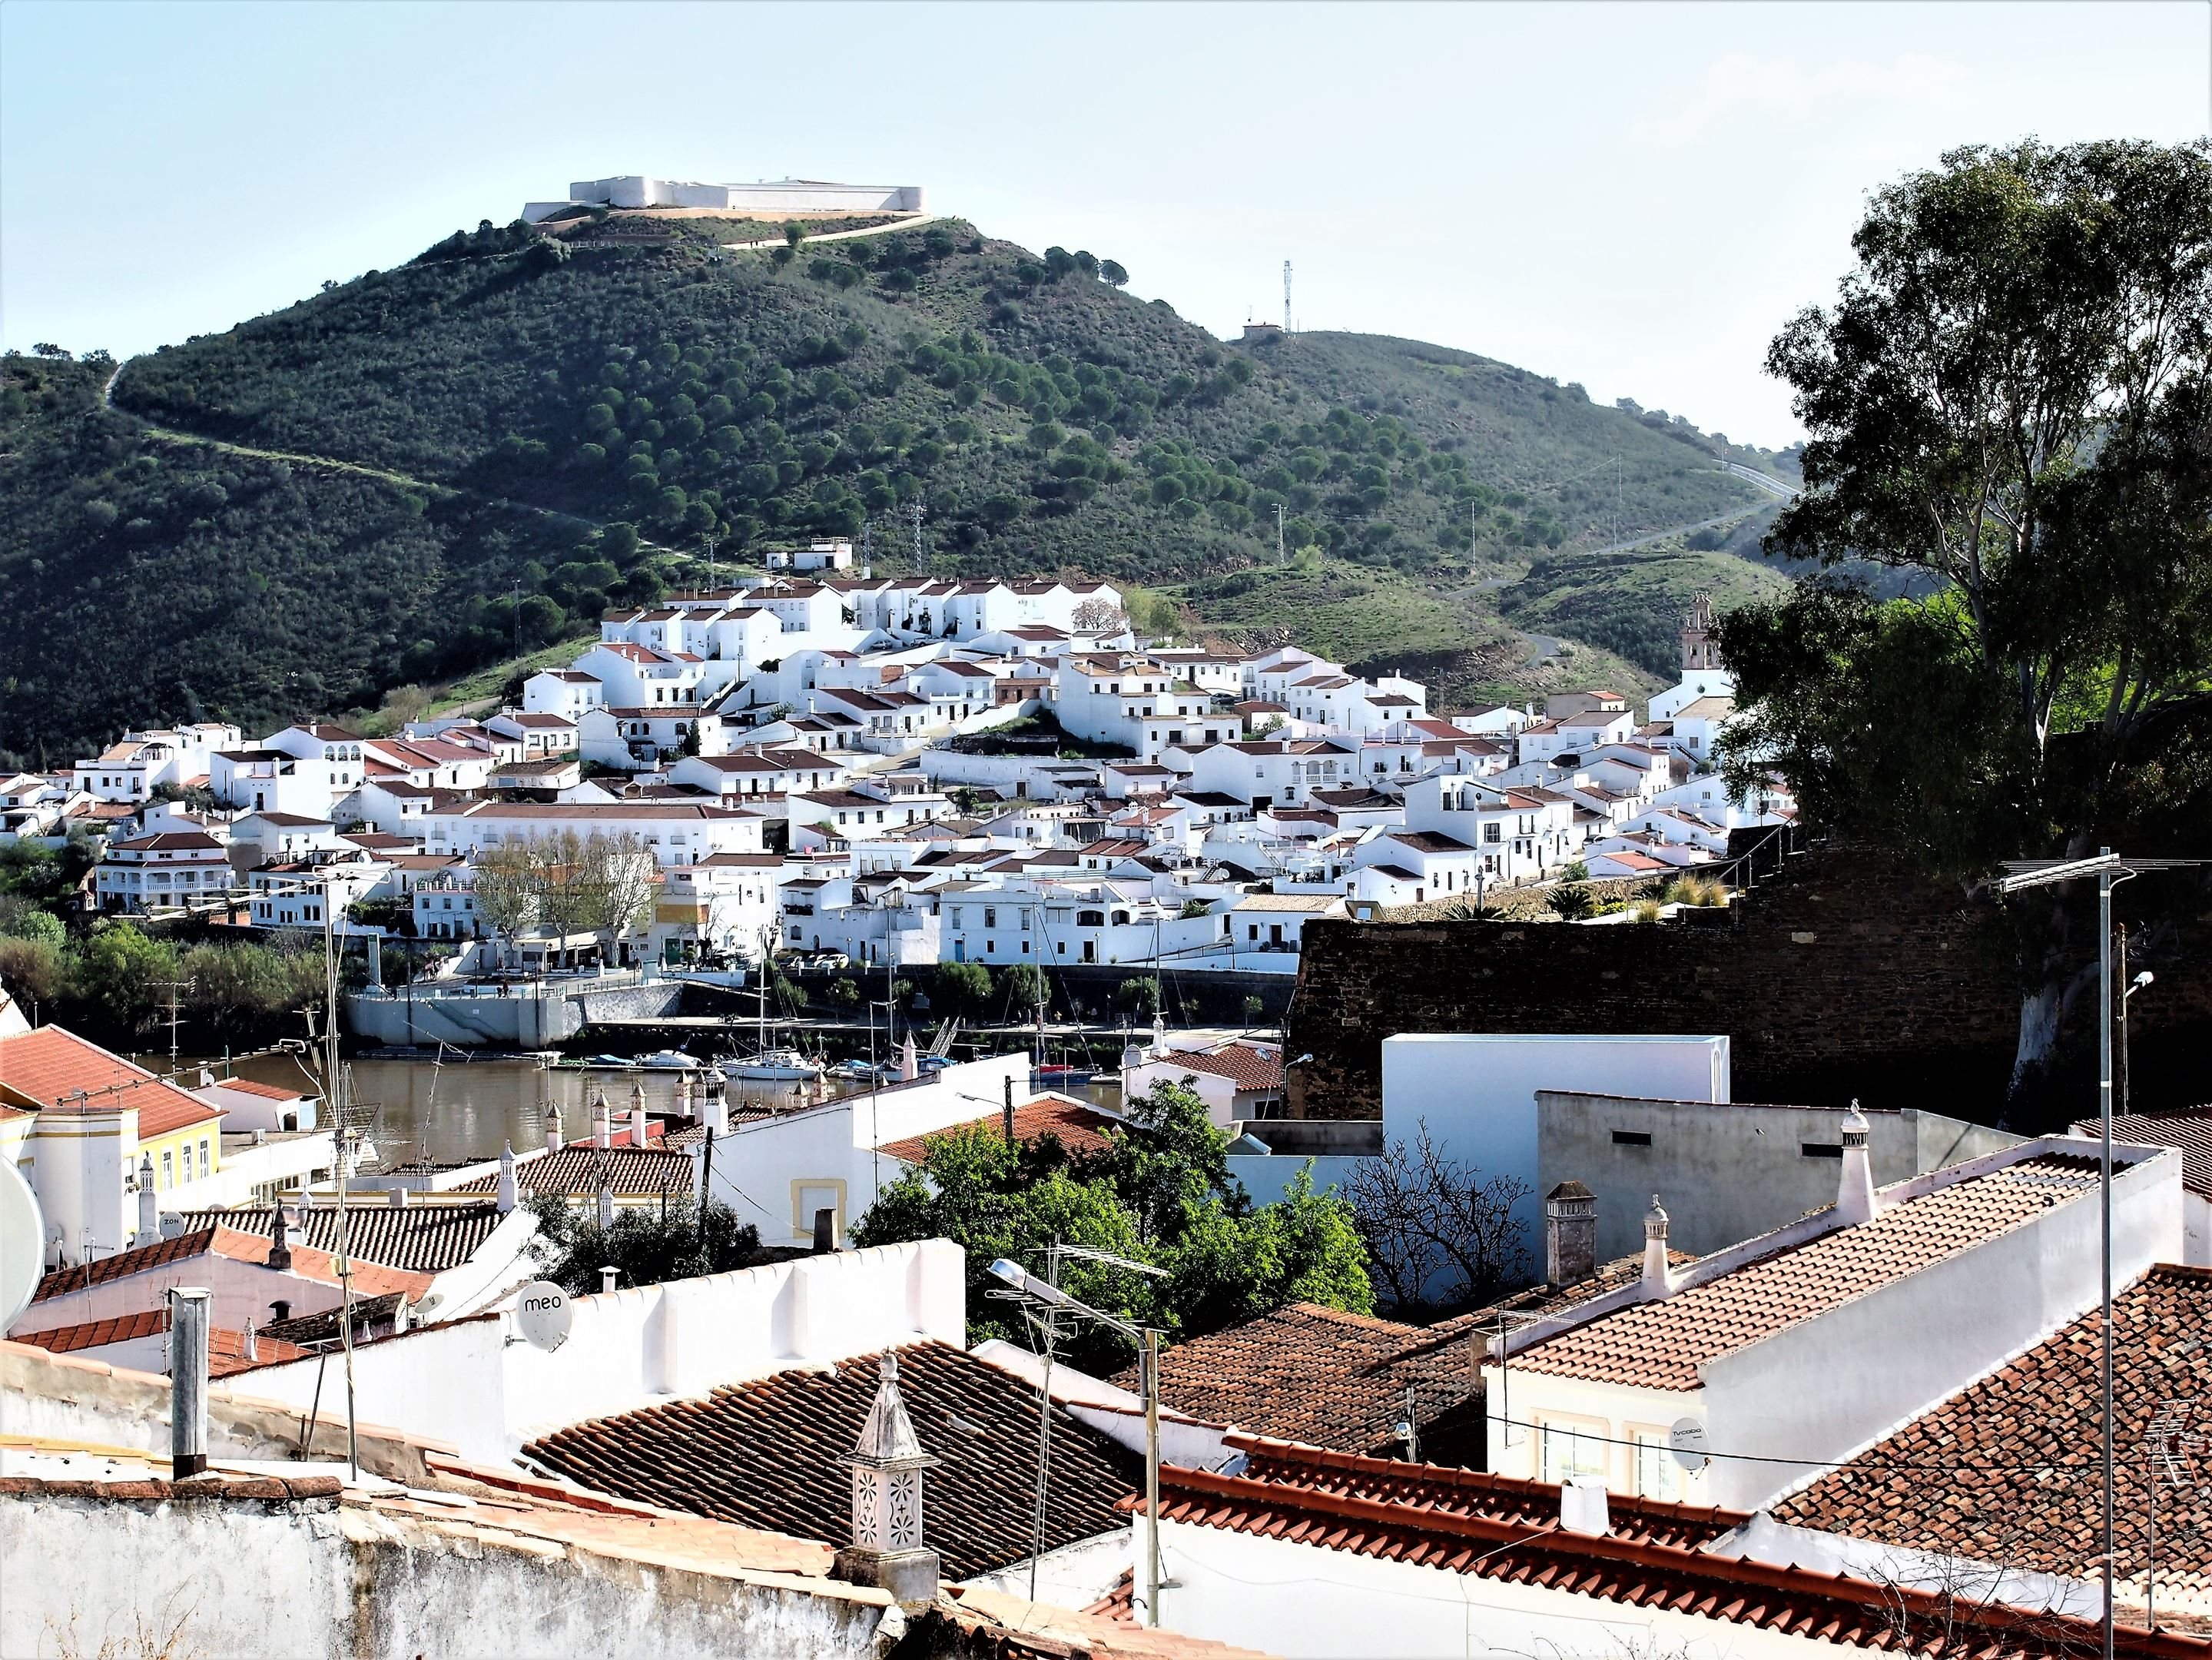 Looking across the rooftops of Alcoutim in Portugal to Sanlúcar de Guadiana in Spain with the castle at the highest point.